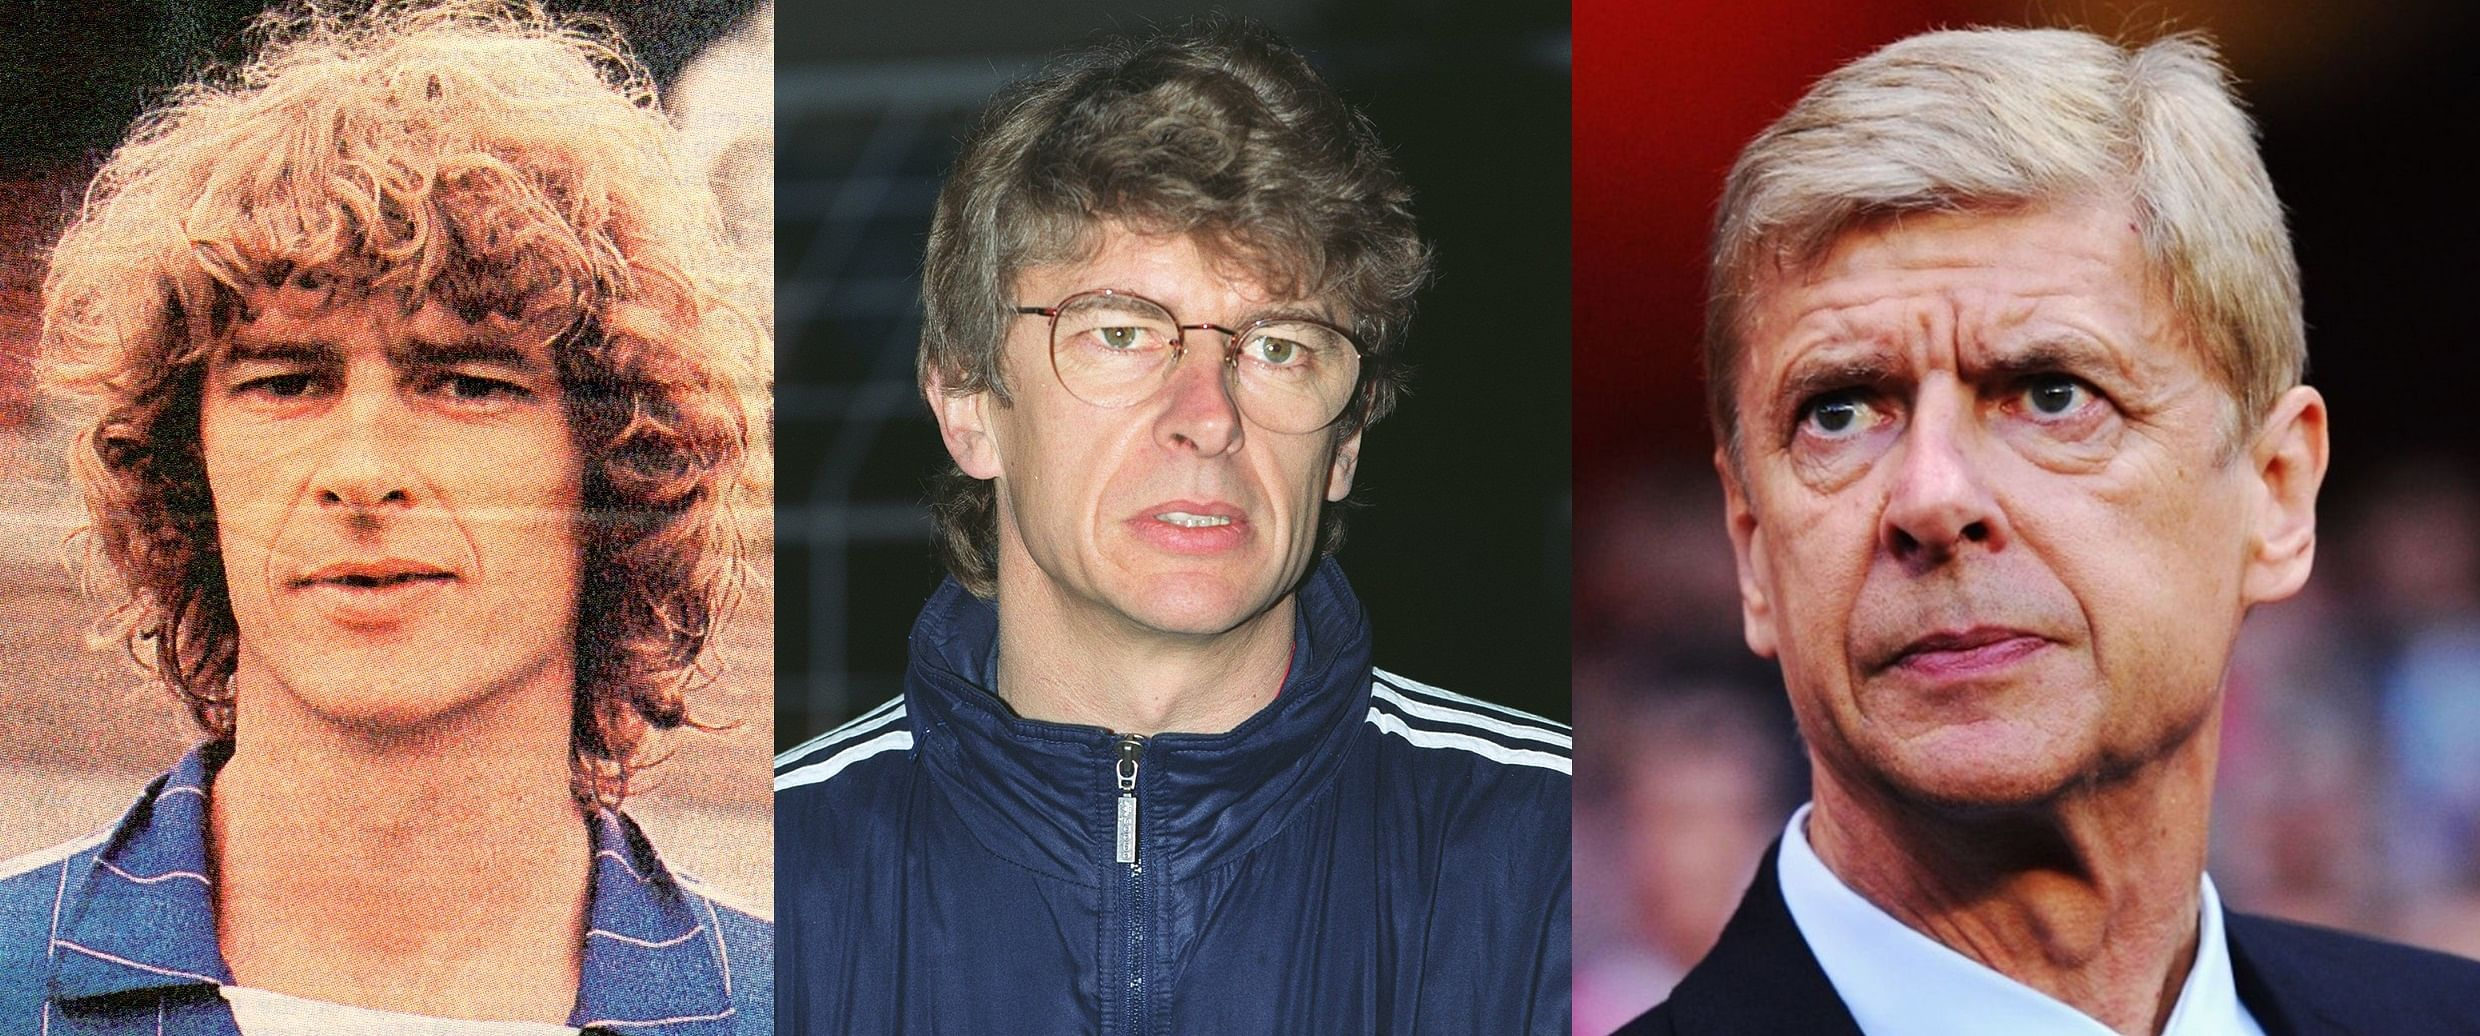 Football Managers: Then and Now